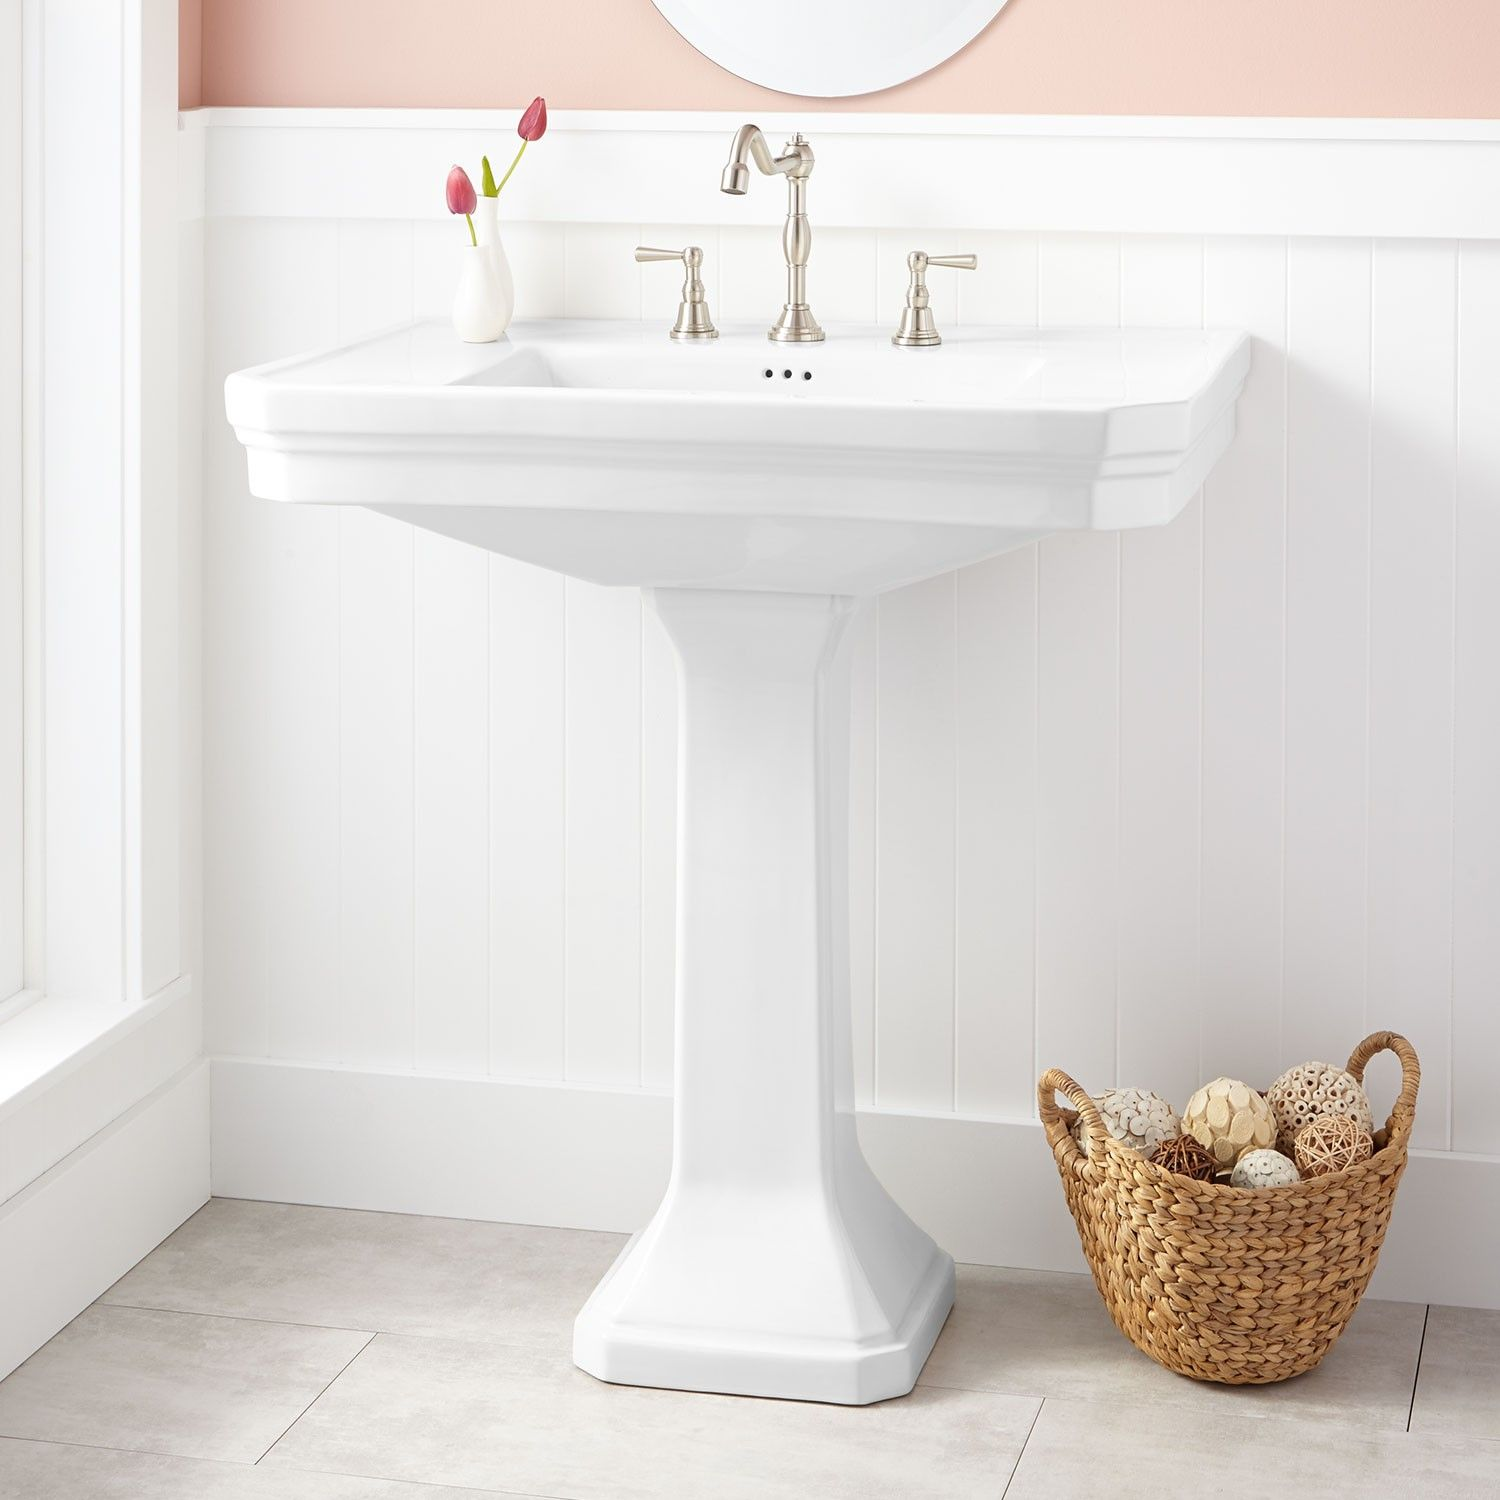 Bathroom sinks with options for everyone - Kacy Porcelain Pedestal Sink